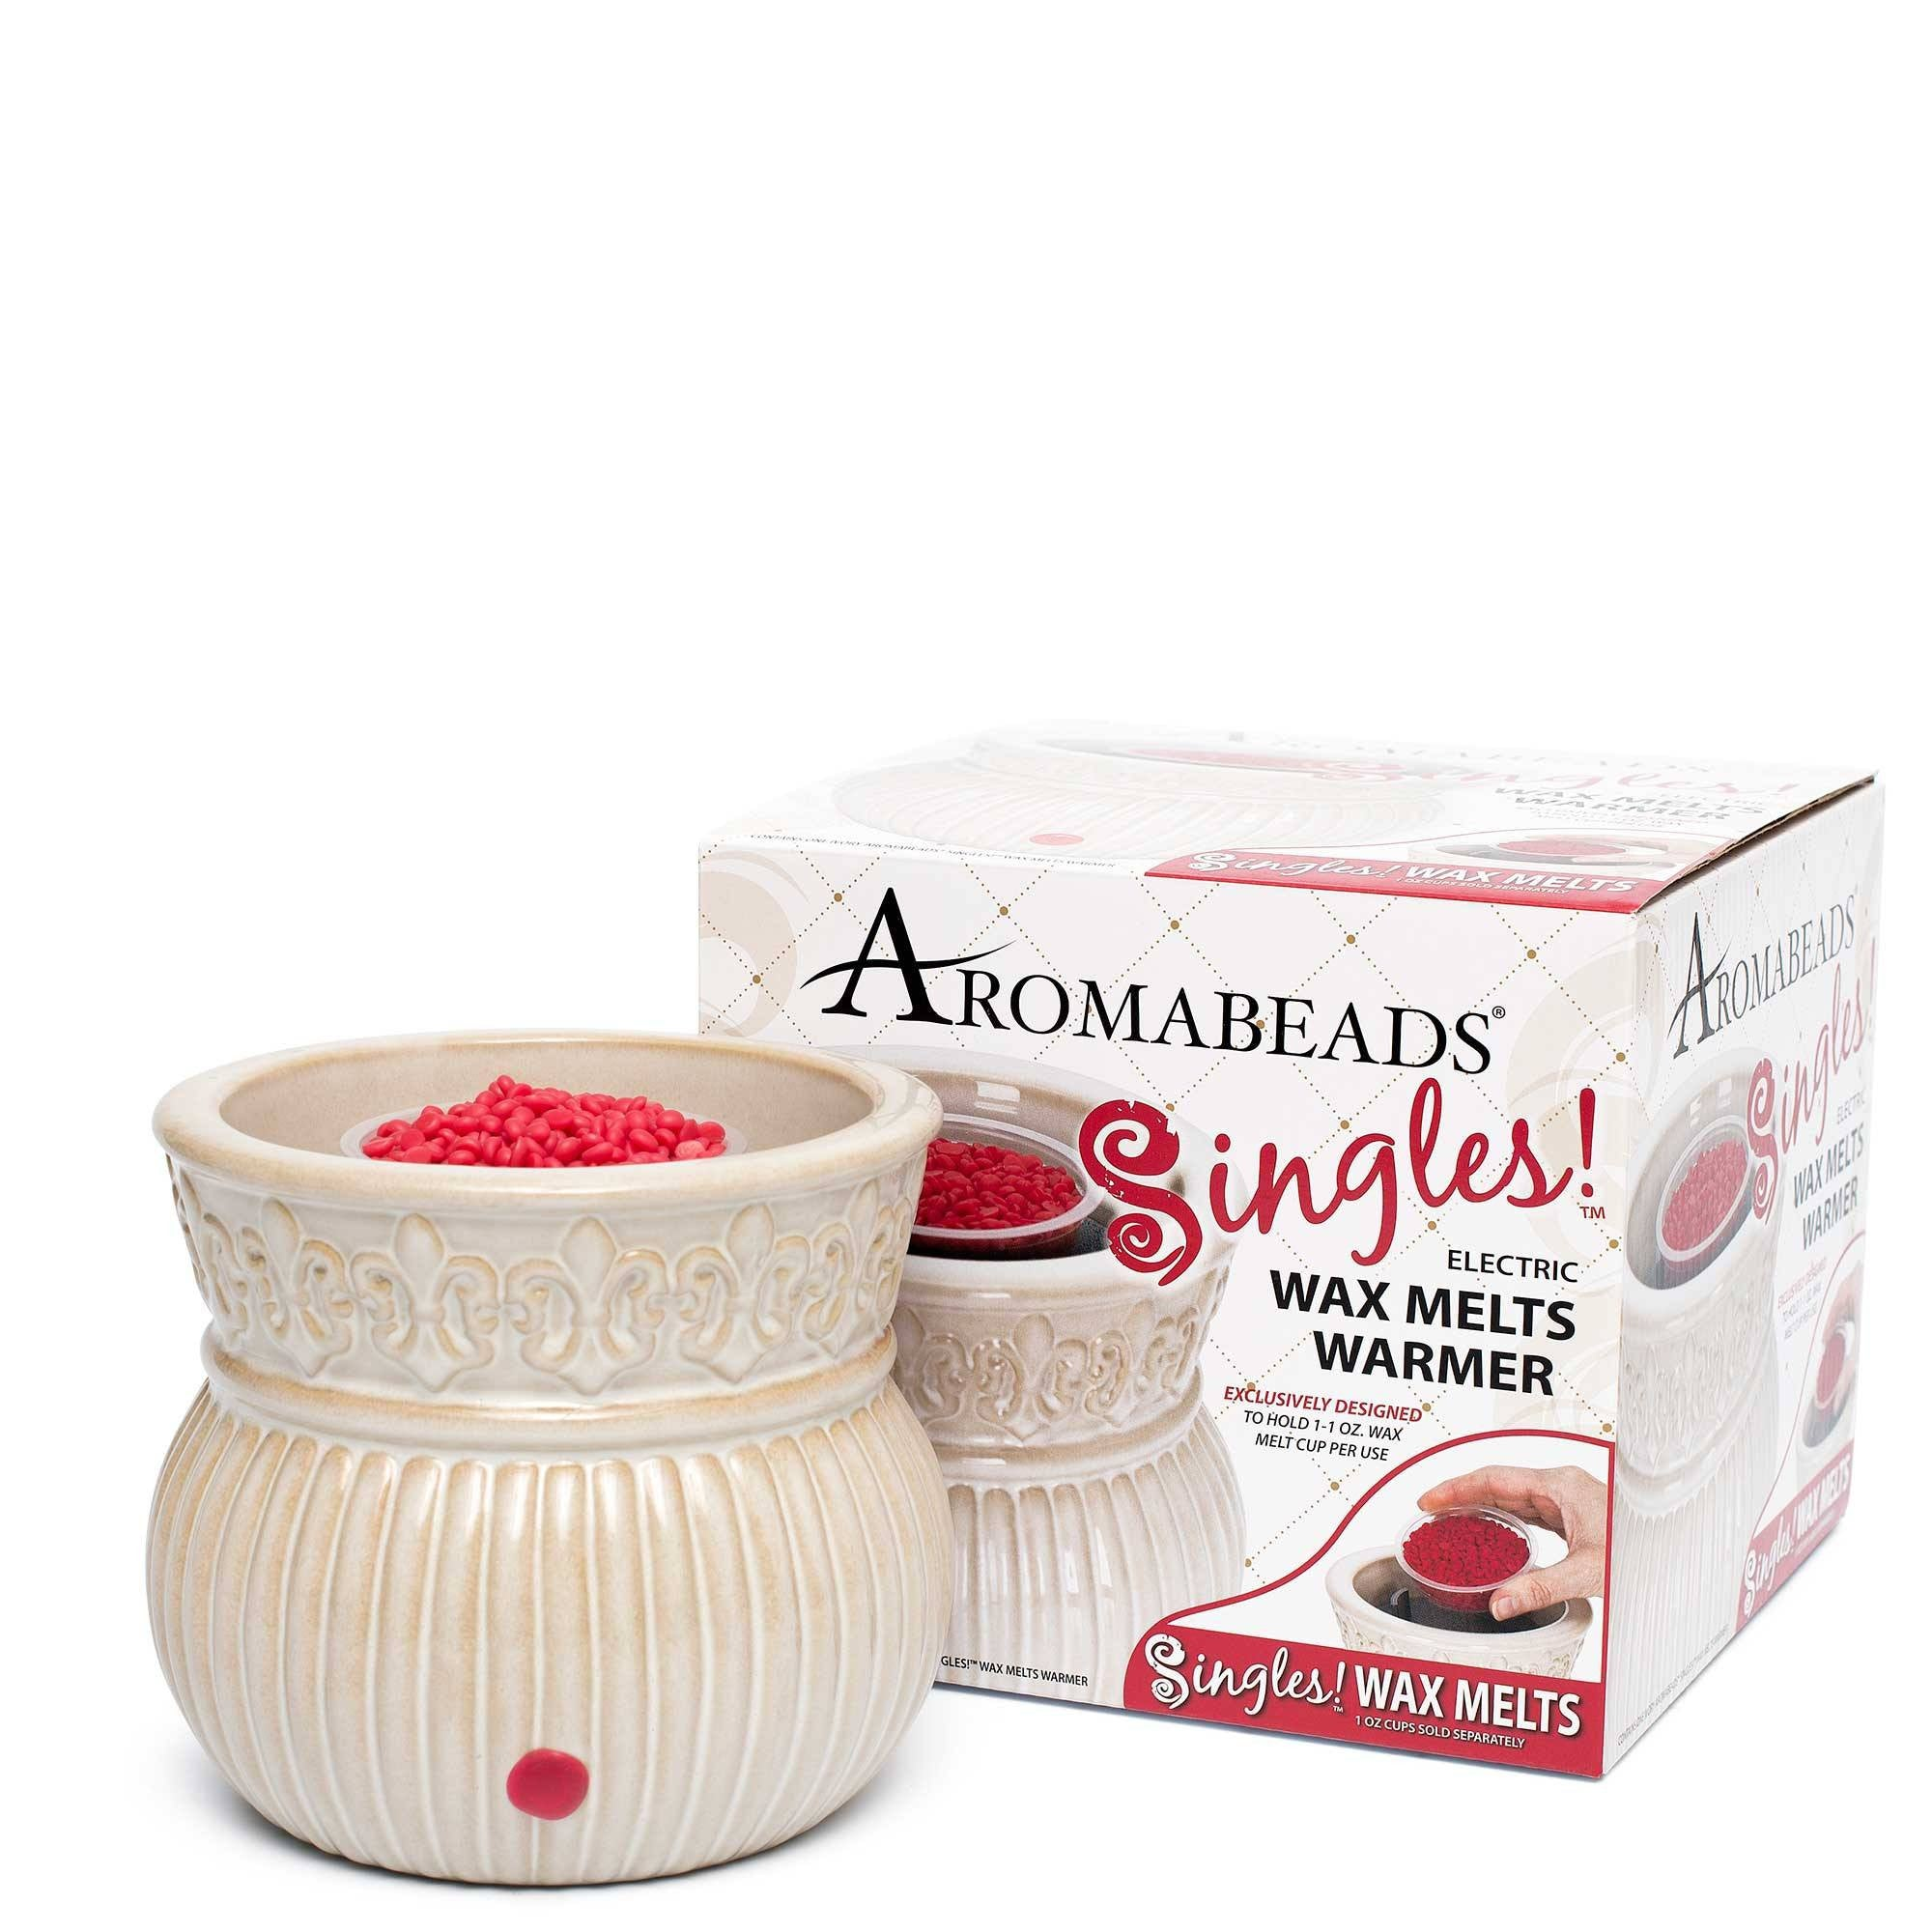 Aromabeads Singles Cedar Box Scented Wax Melts - Candlemart.com - 2